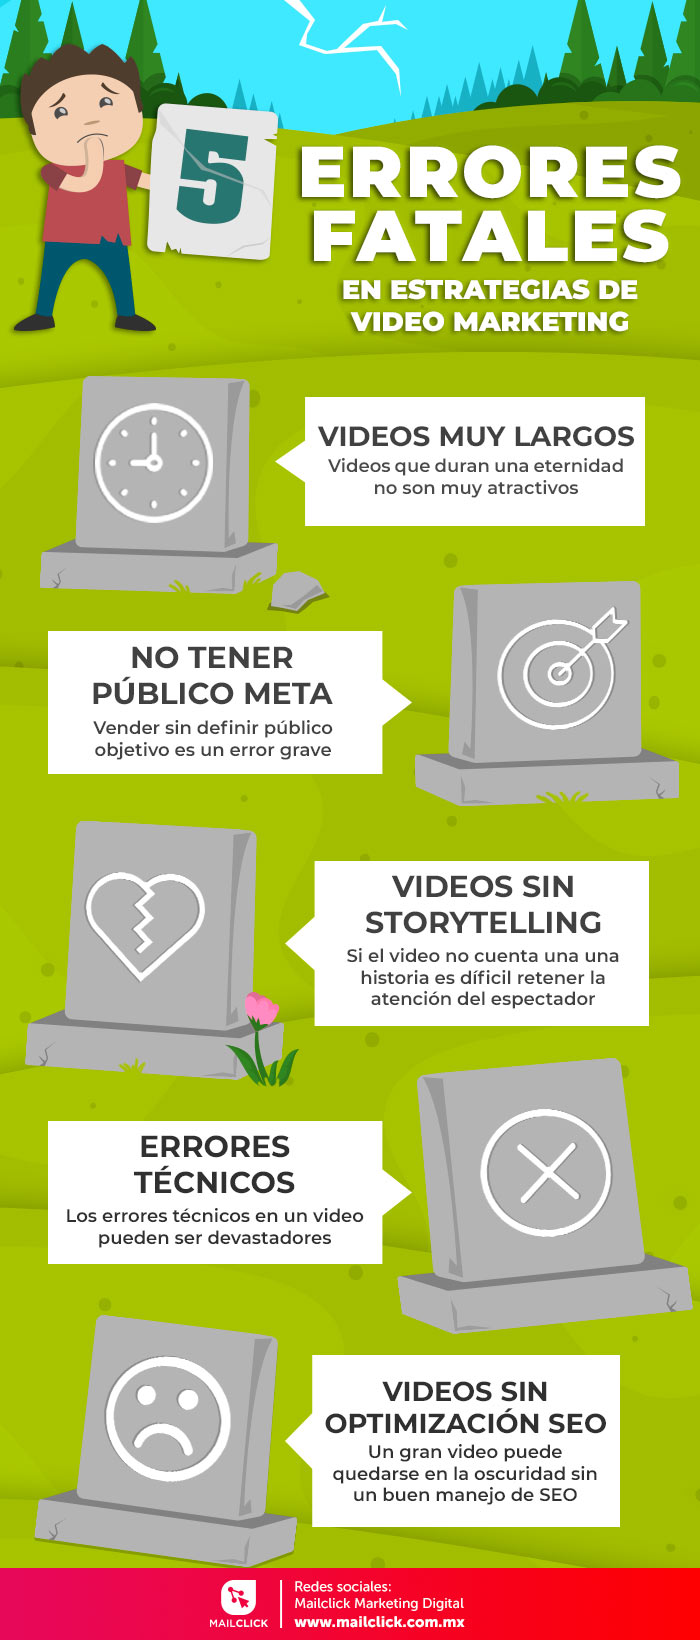 Errores que pueden acabar con una campaña de video marketing